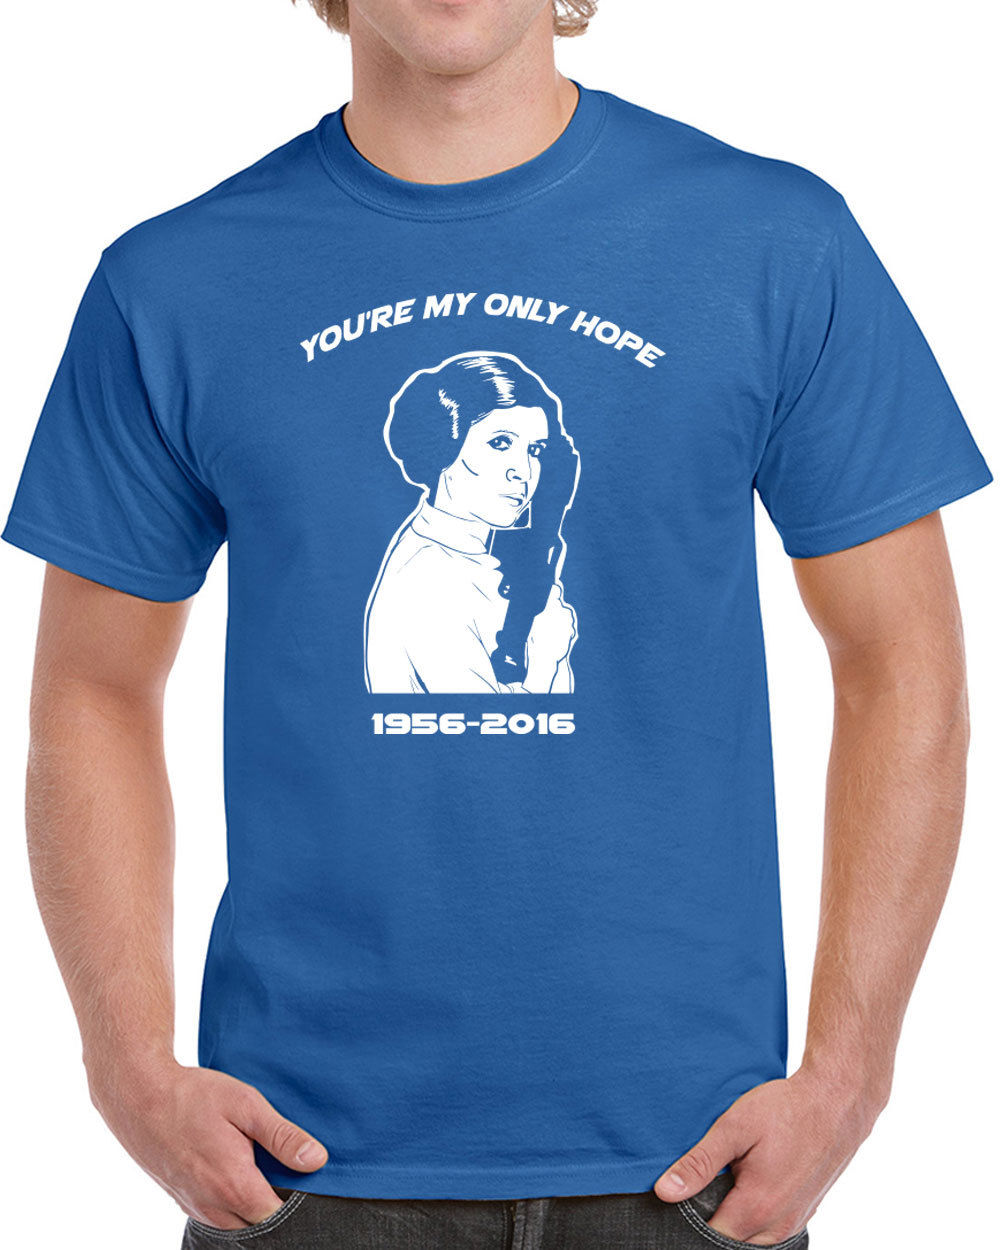 552 Only Hope mens T shirt carrie tribute fisher star geek nerd jedi wars cool Print Tee Men Short Sleeve Clothing free shipping in T Shirts from Men 39 s Clothing